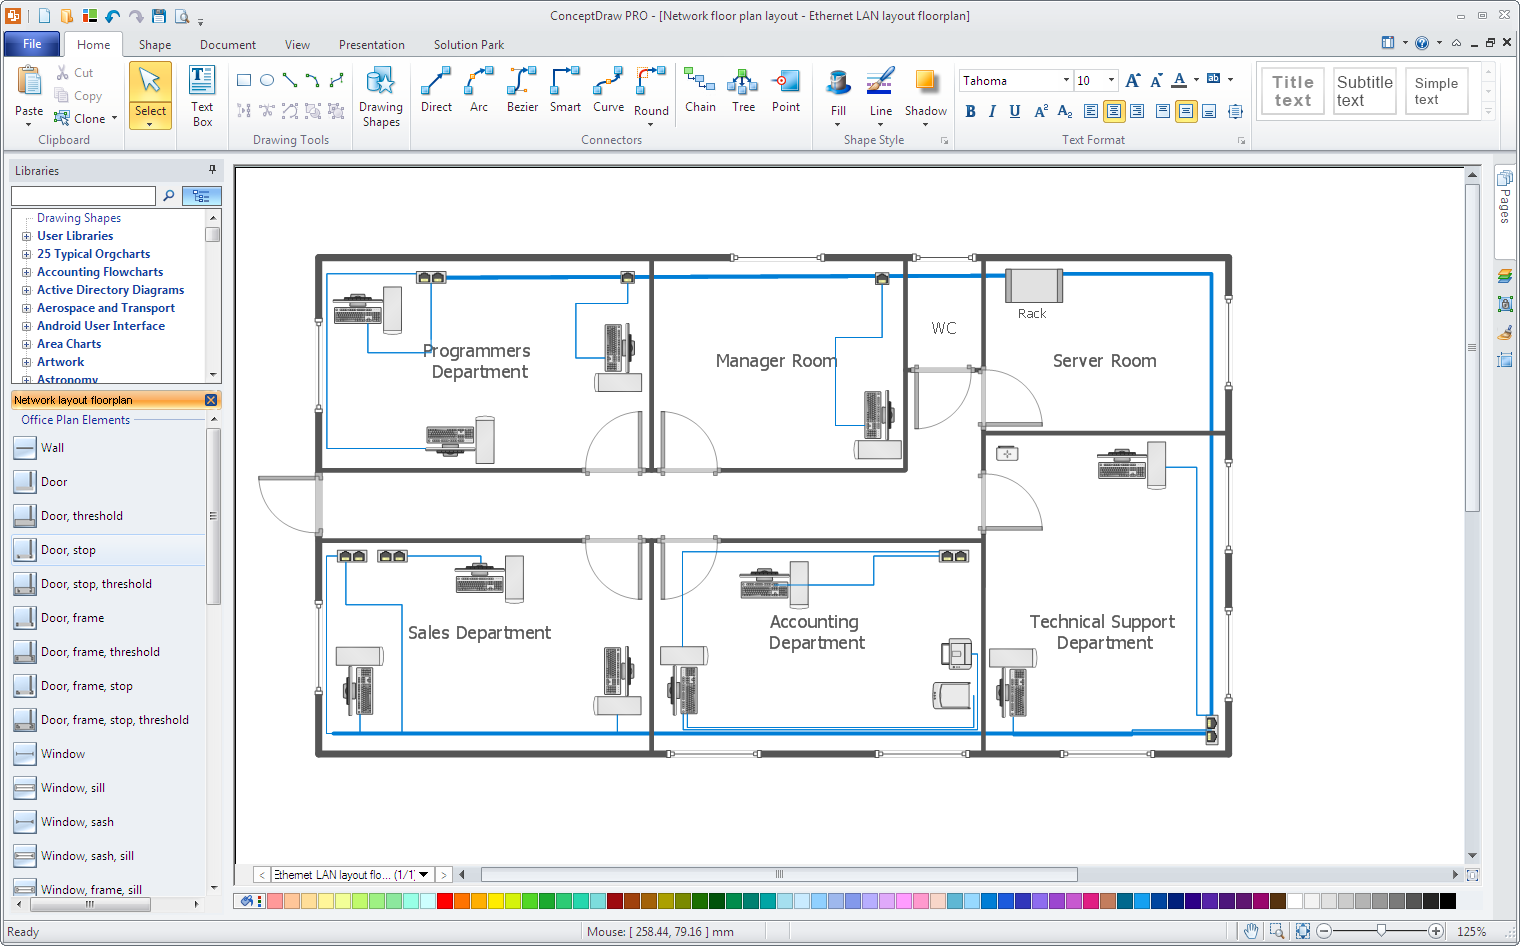 Office Network layout